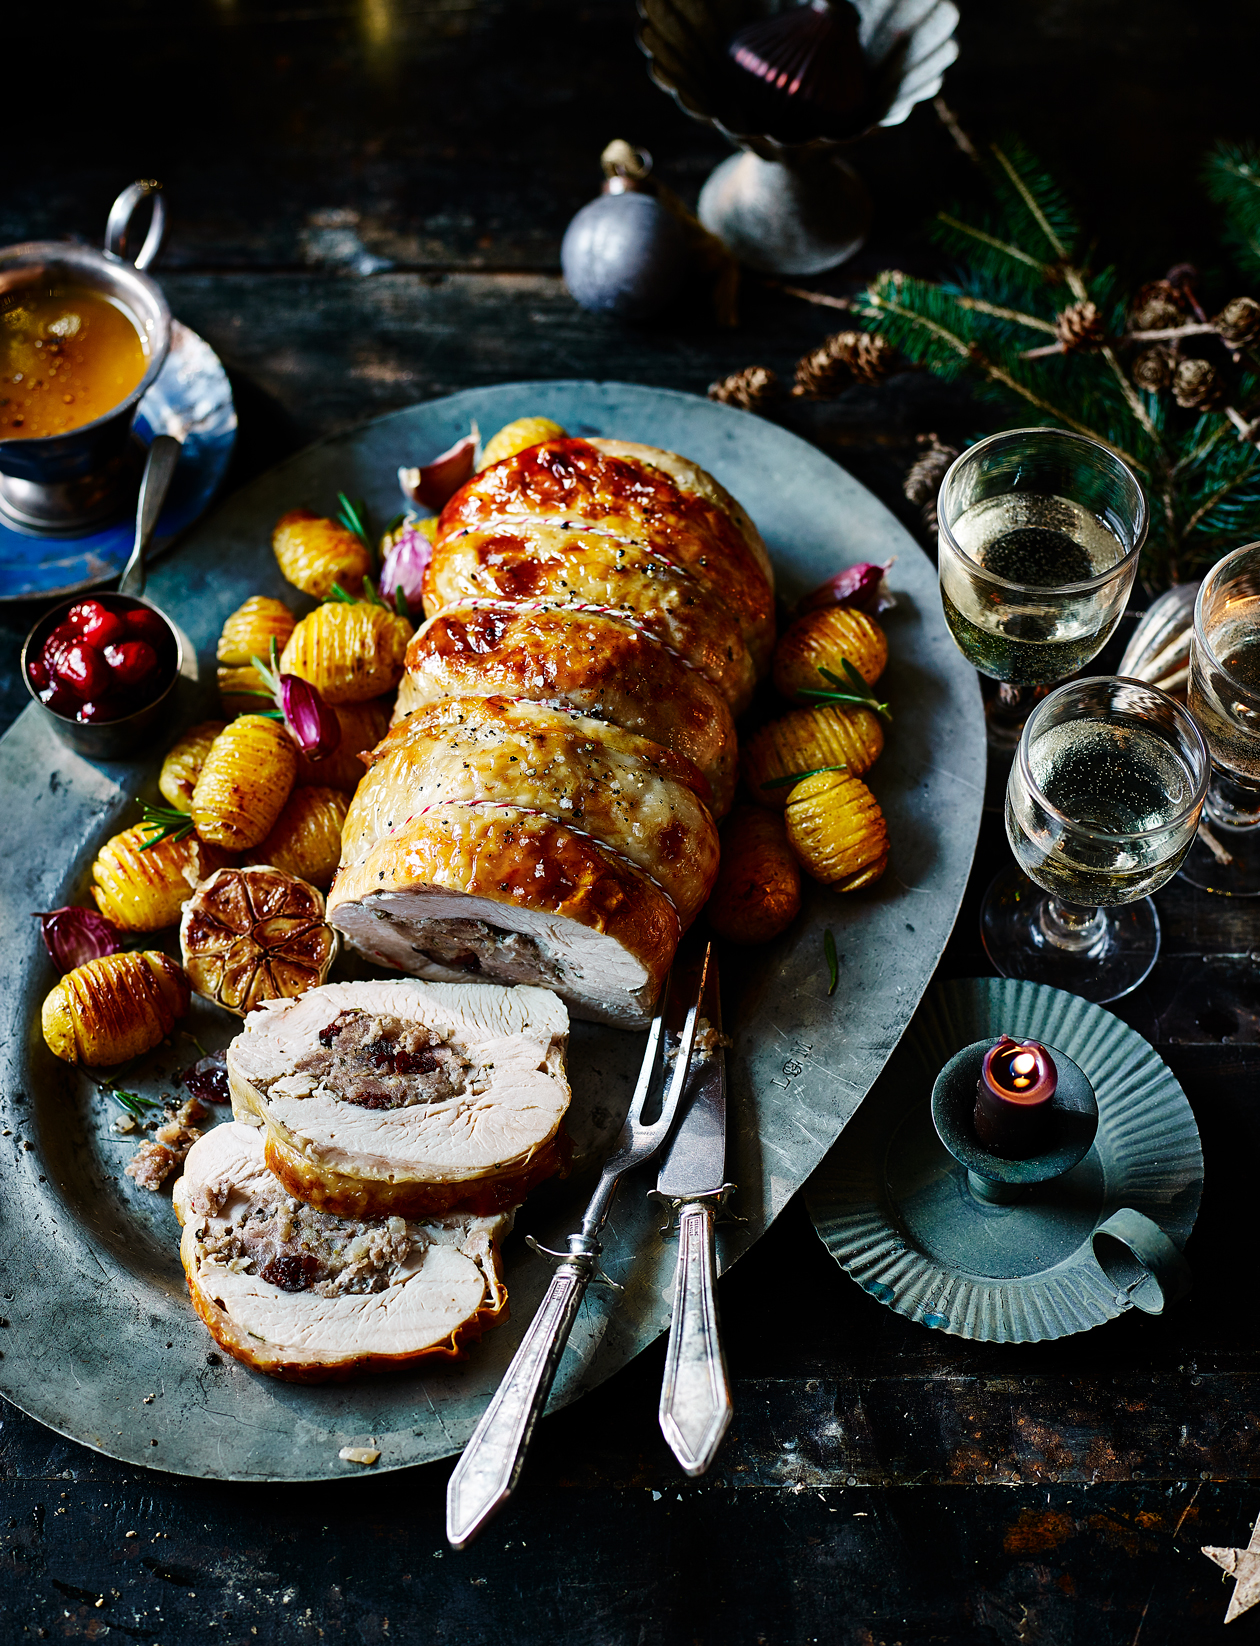 Rolled turkey breast with rosemary and cranberry stuffing recipe |  Sainsbury's Magazine